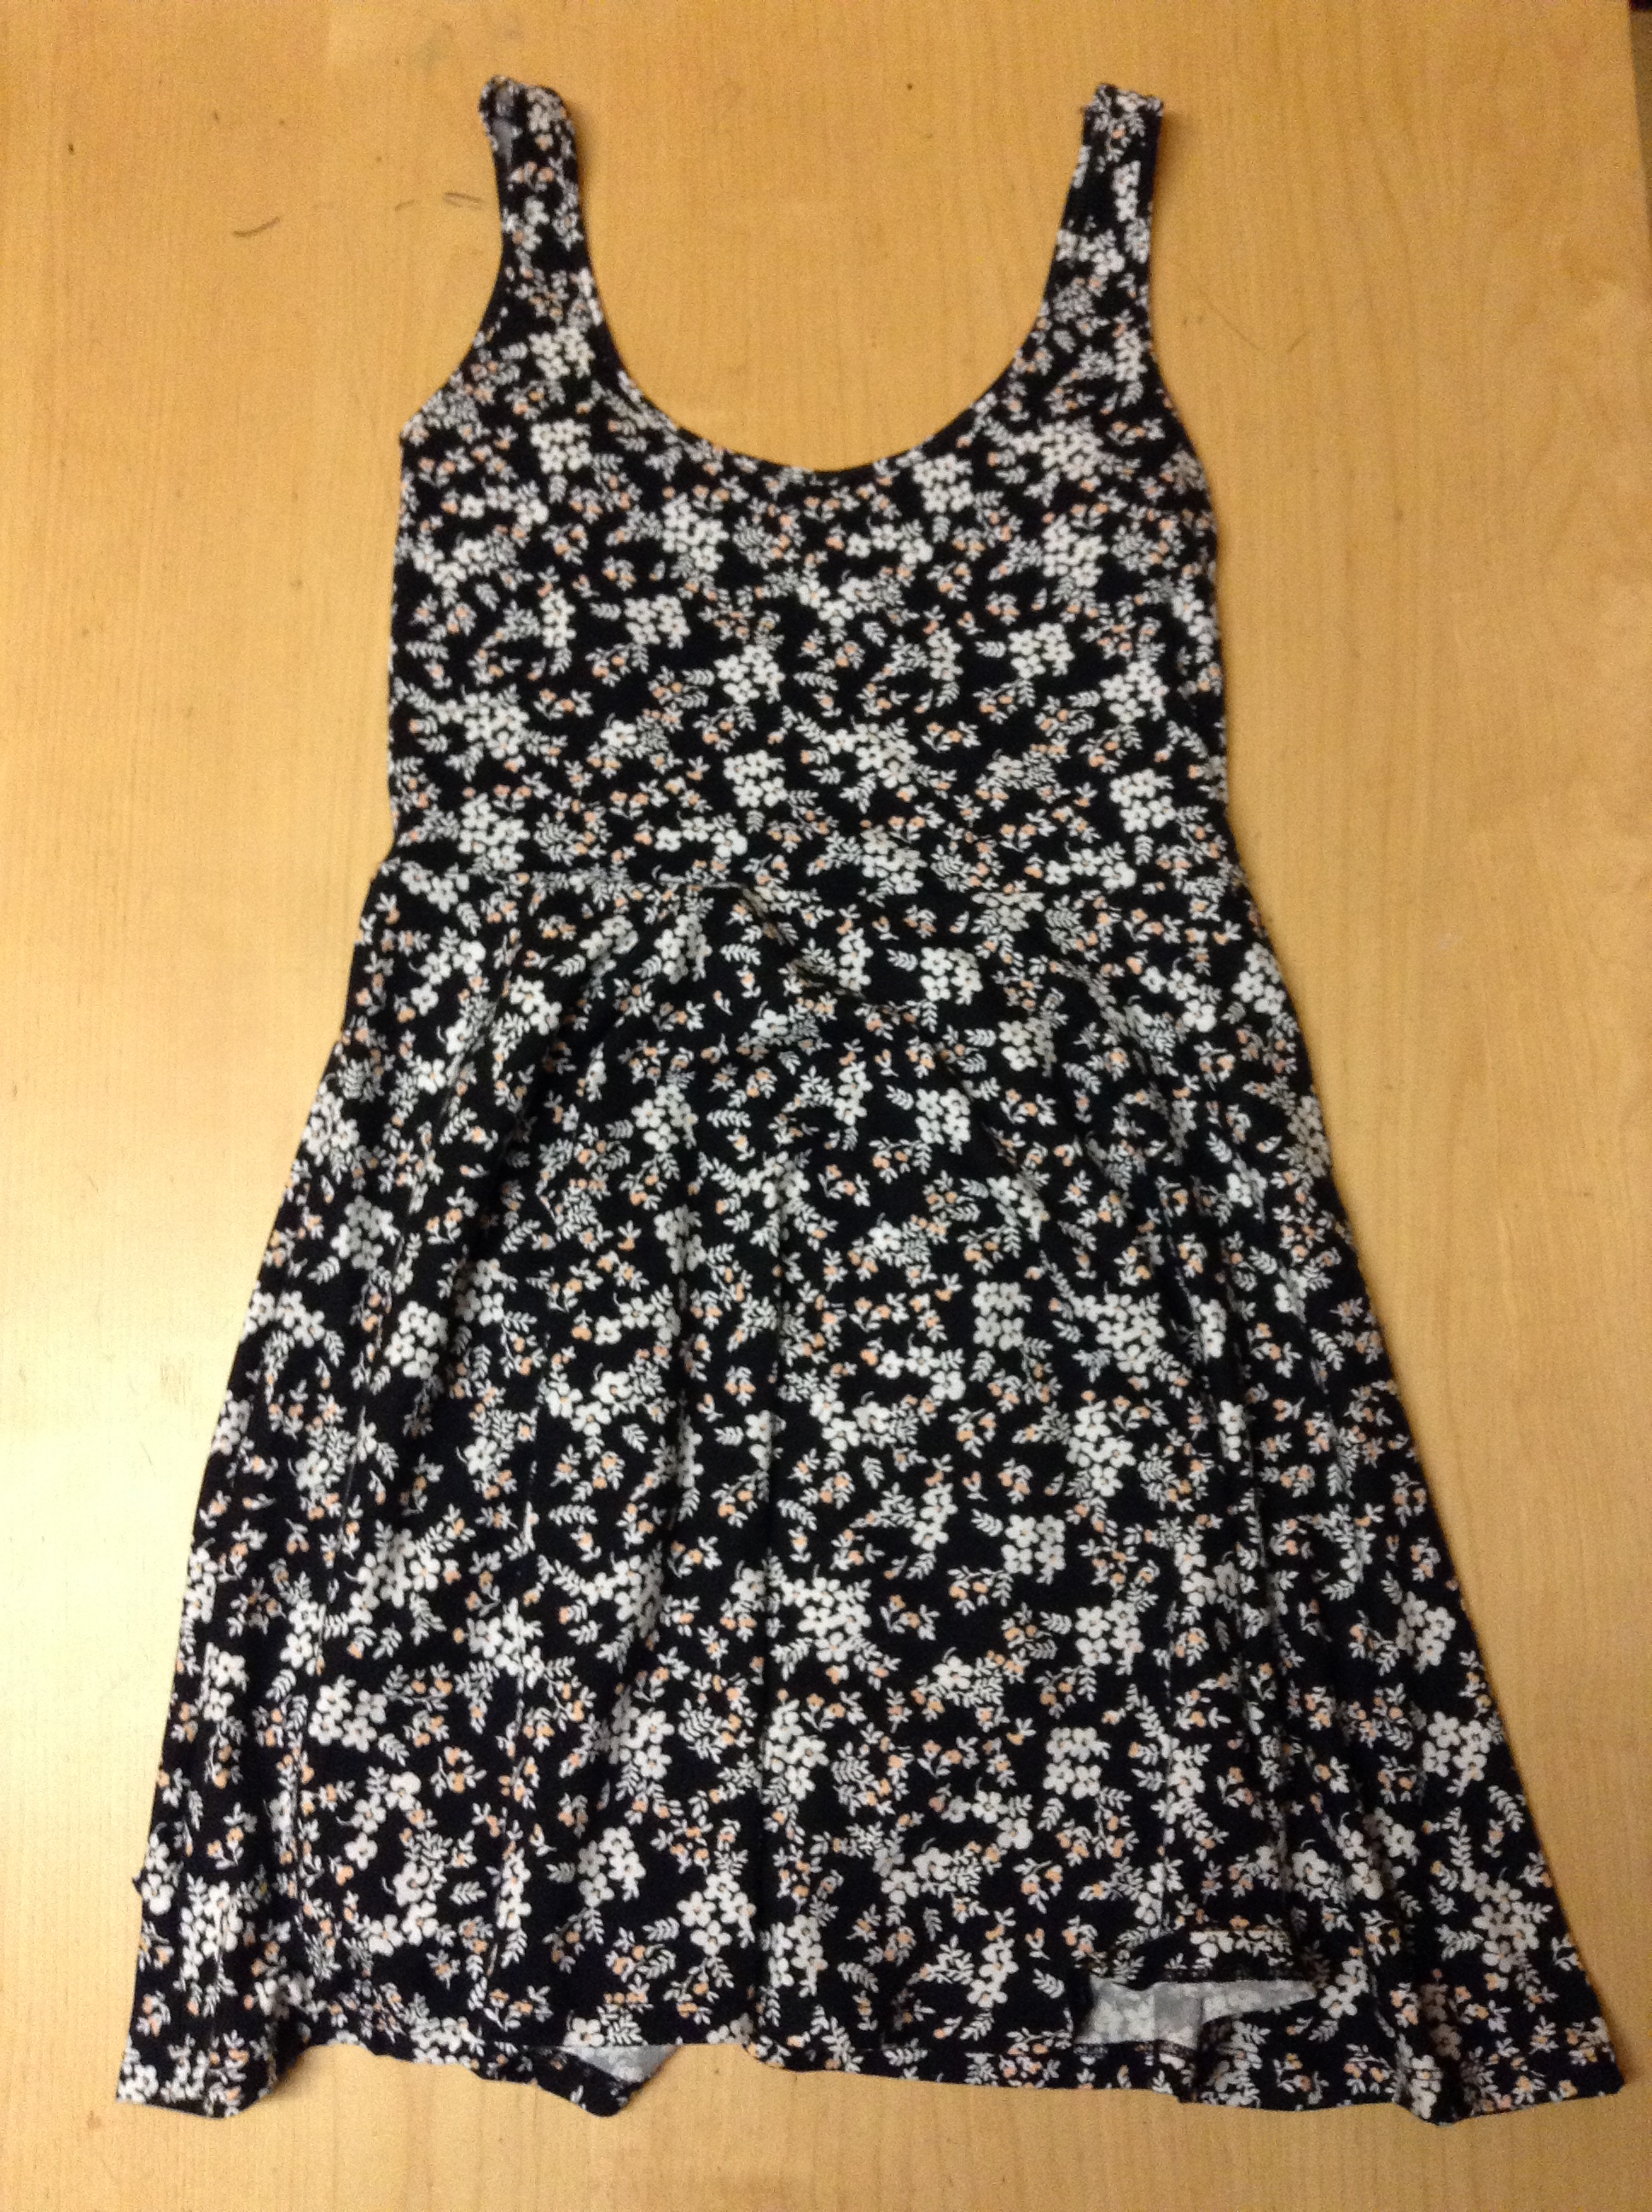 963e8c0dbce9 I got this dress and I just love it! It is a cotton material that is very  light and fluffy. I thought this dress would be perfect for a lot of  different ...